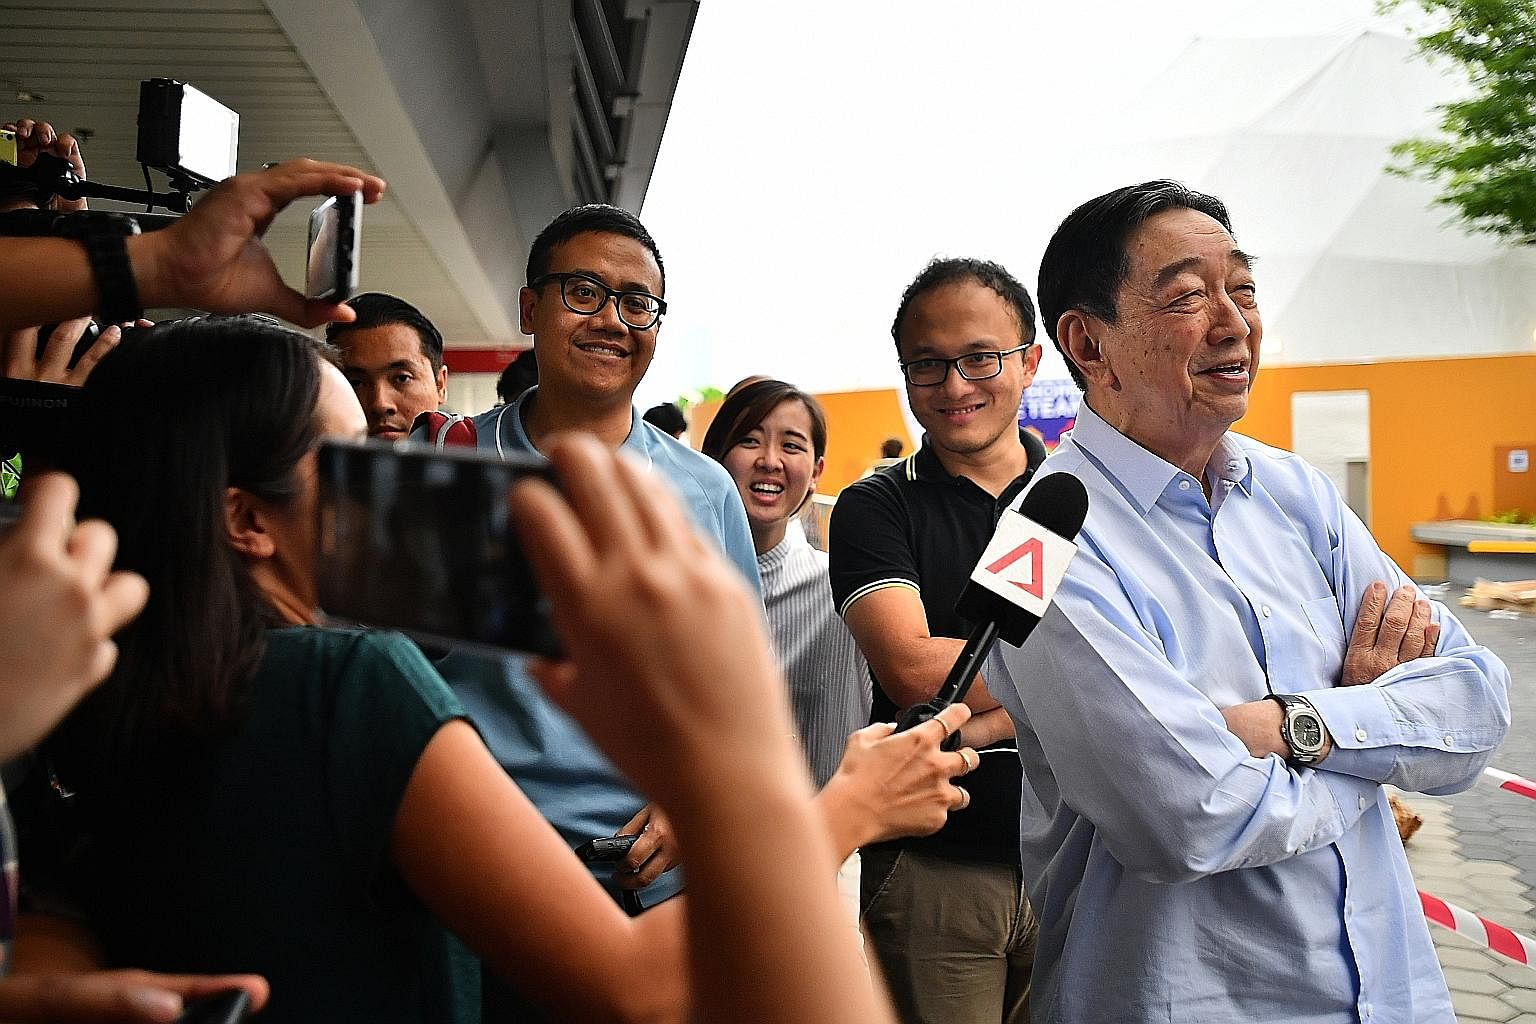 Newly-elected FAS vice-president Teo Hock Seng was a crucial asset for Team LKT. The former Tampines Rovers chairman's standing in the game and renowned passion towards Singapore football gave more clout to the winning team.